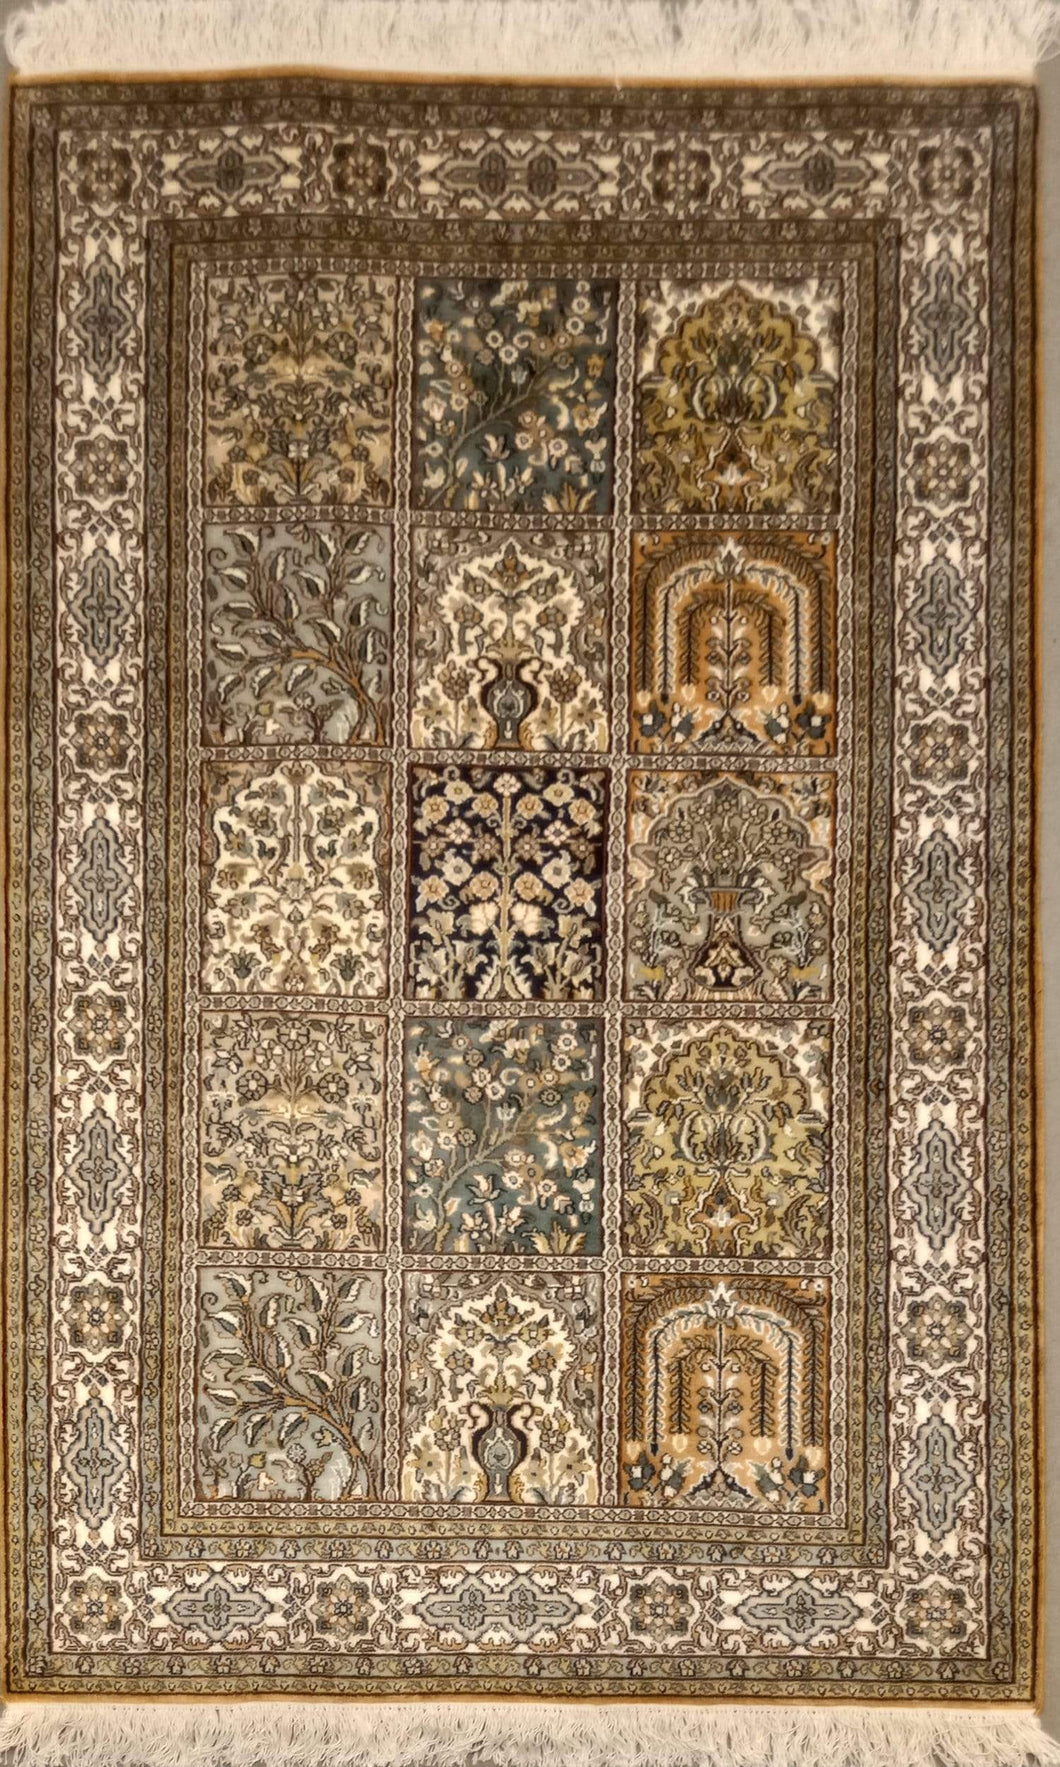 The Rugs Cafe Carpets 3x5 Mughal Garden Design - Silk Rug